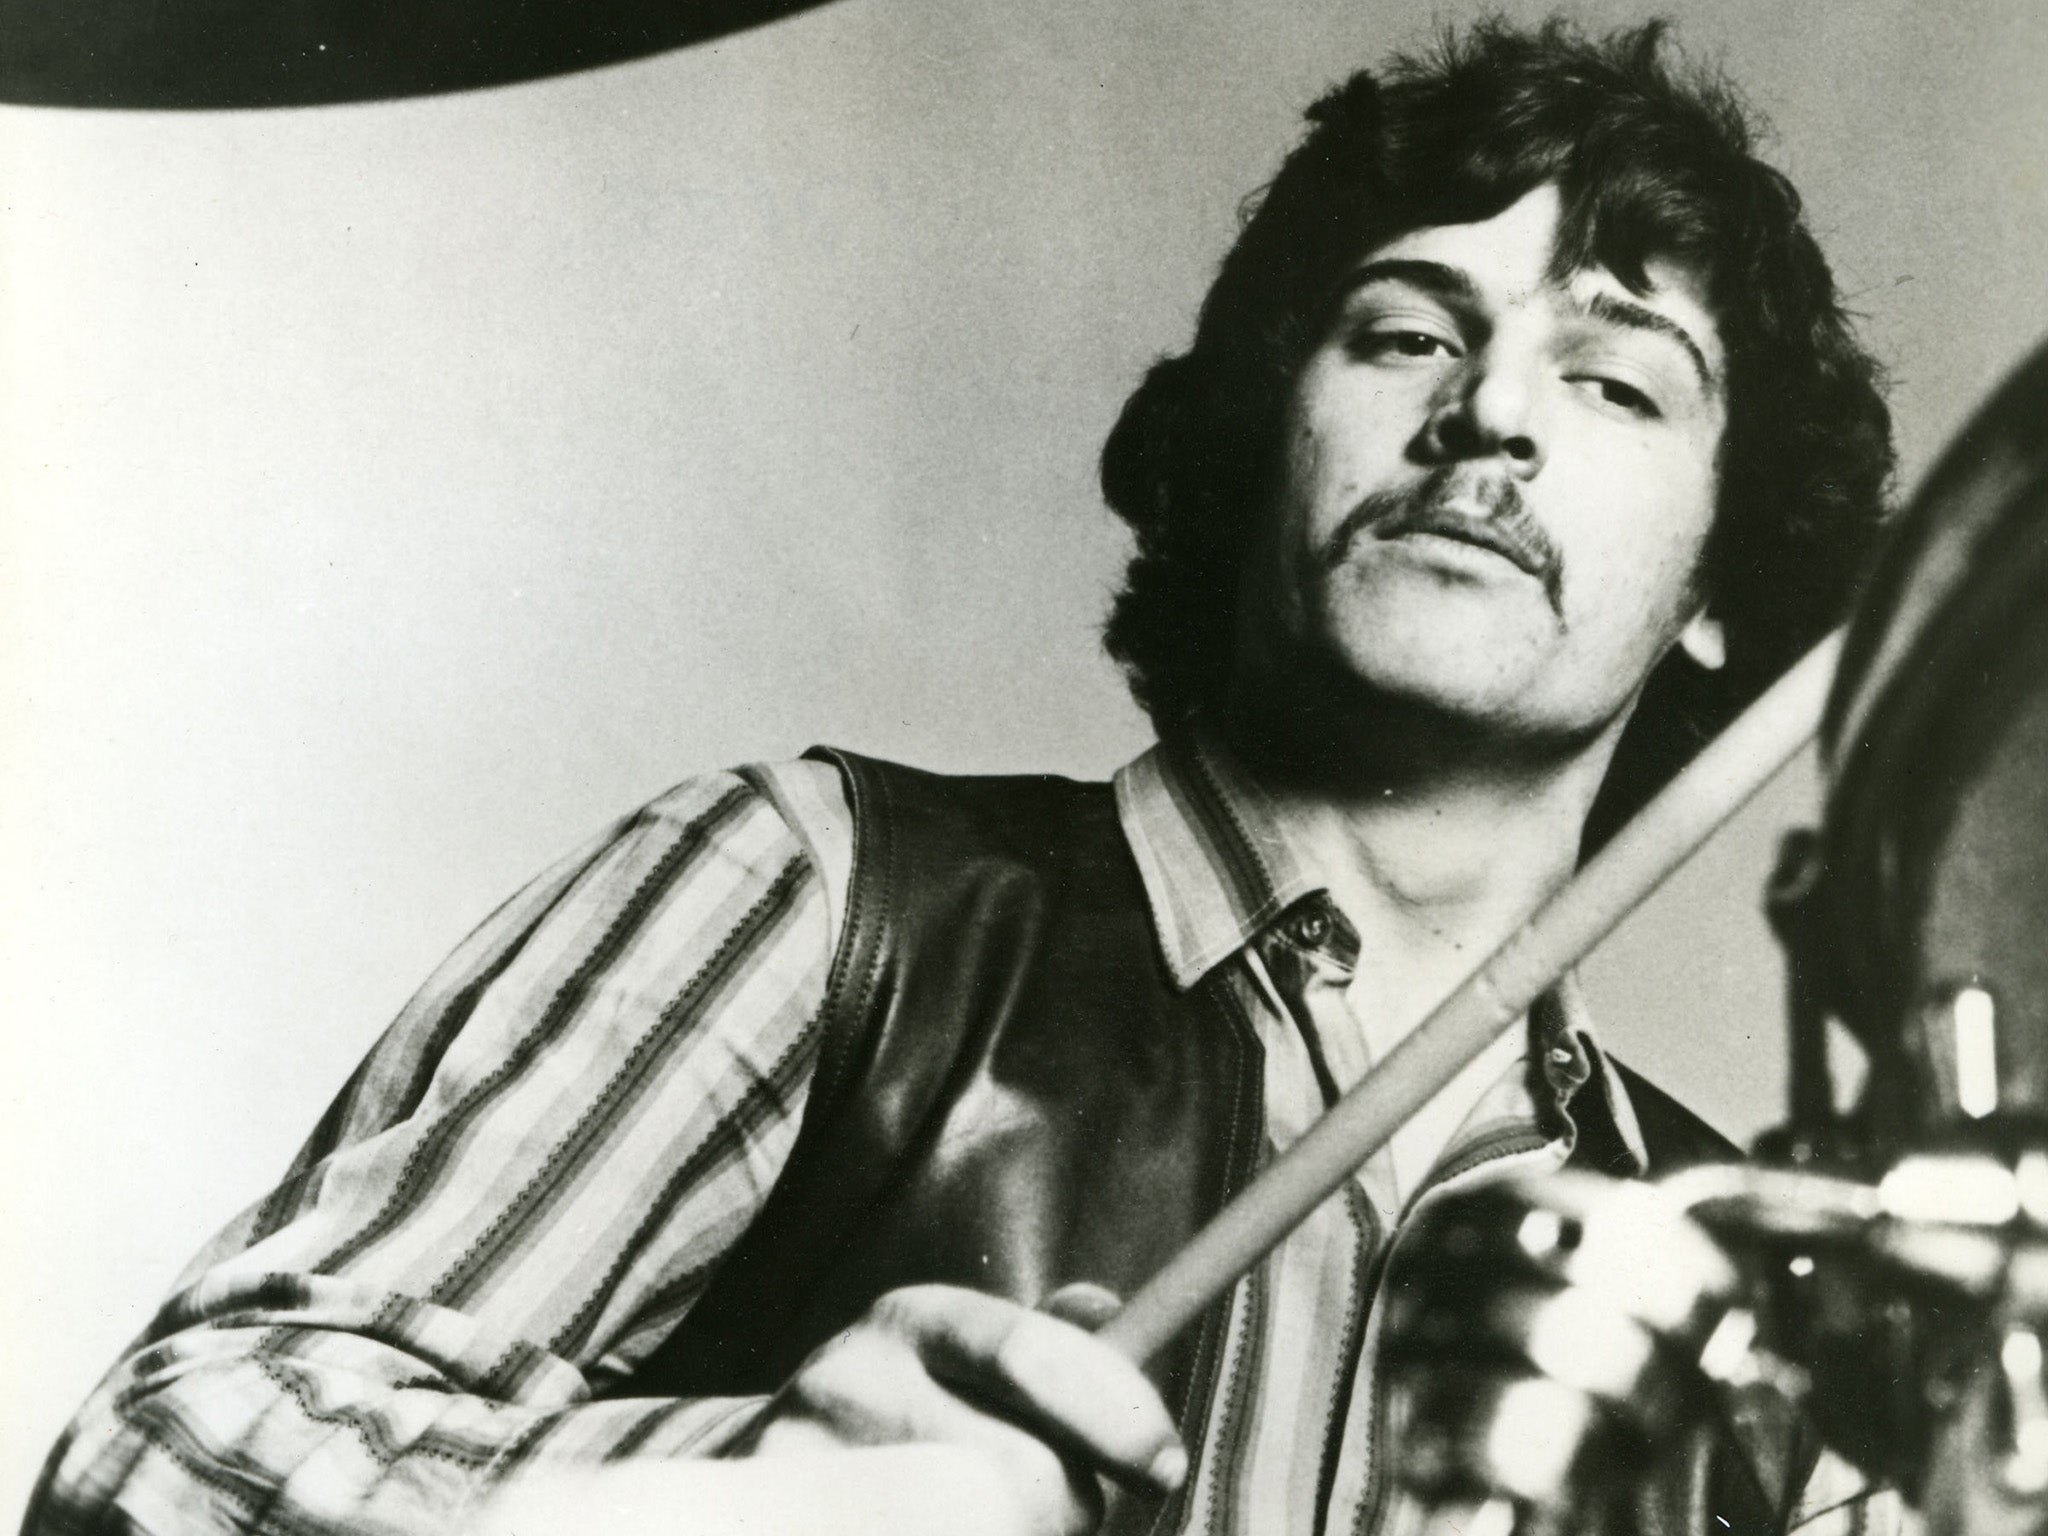 Jon Hiseman: Master drummer and Colosseum founder who pioneered ...